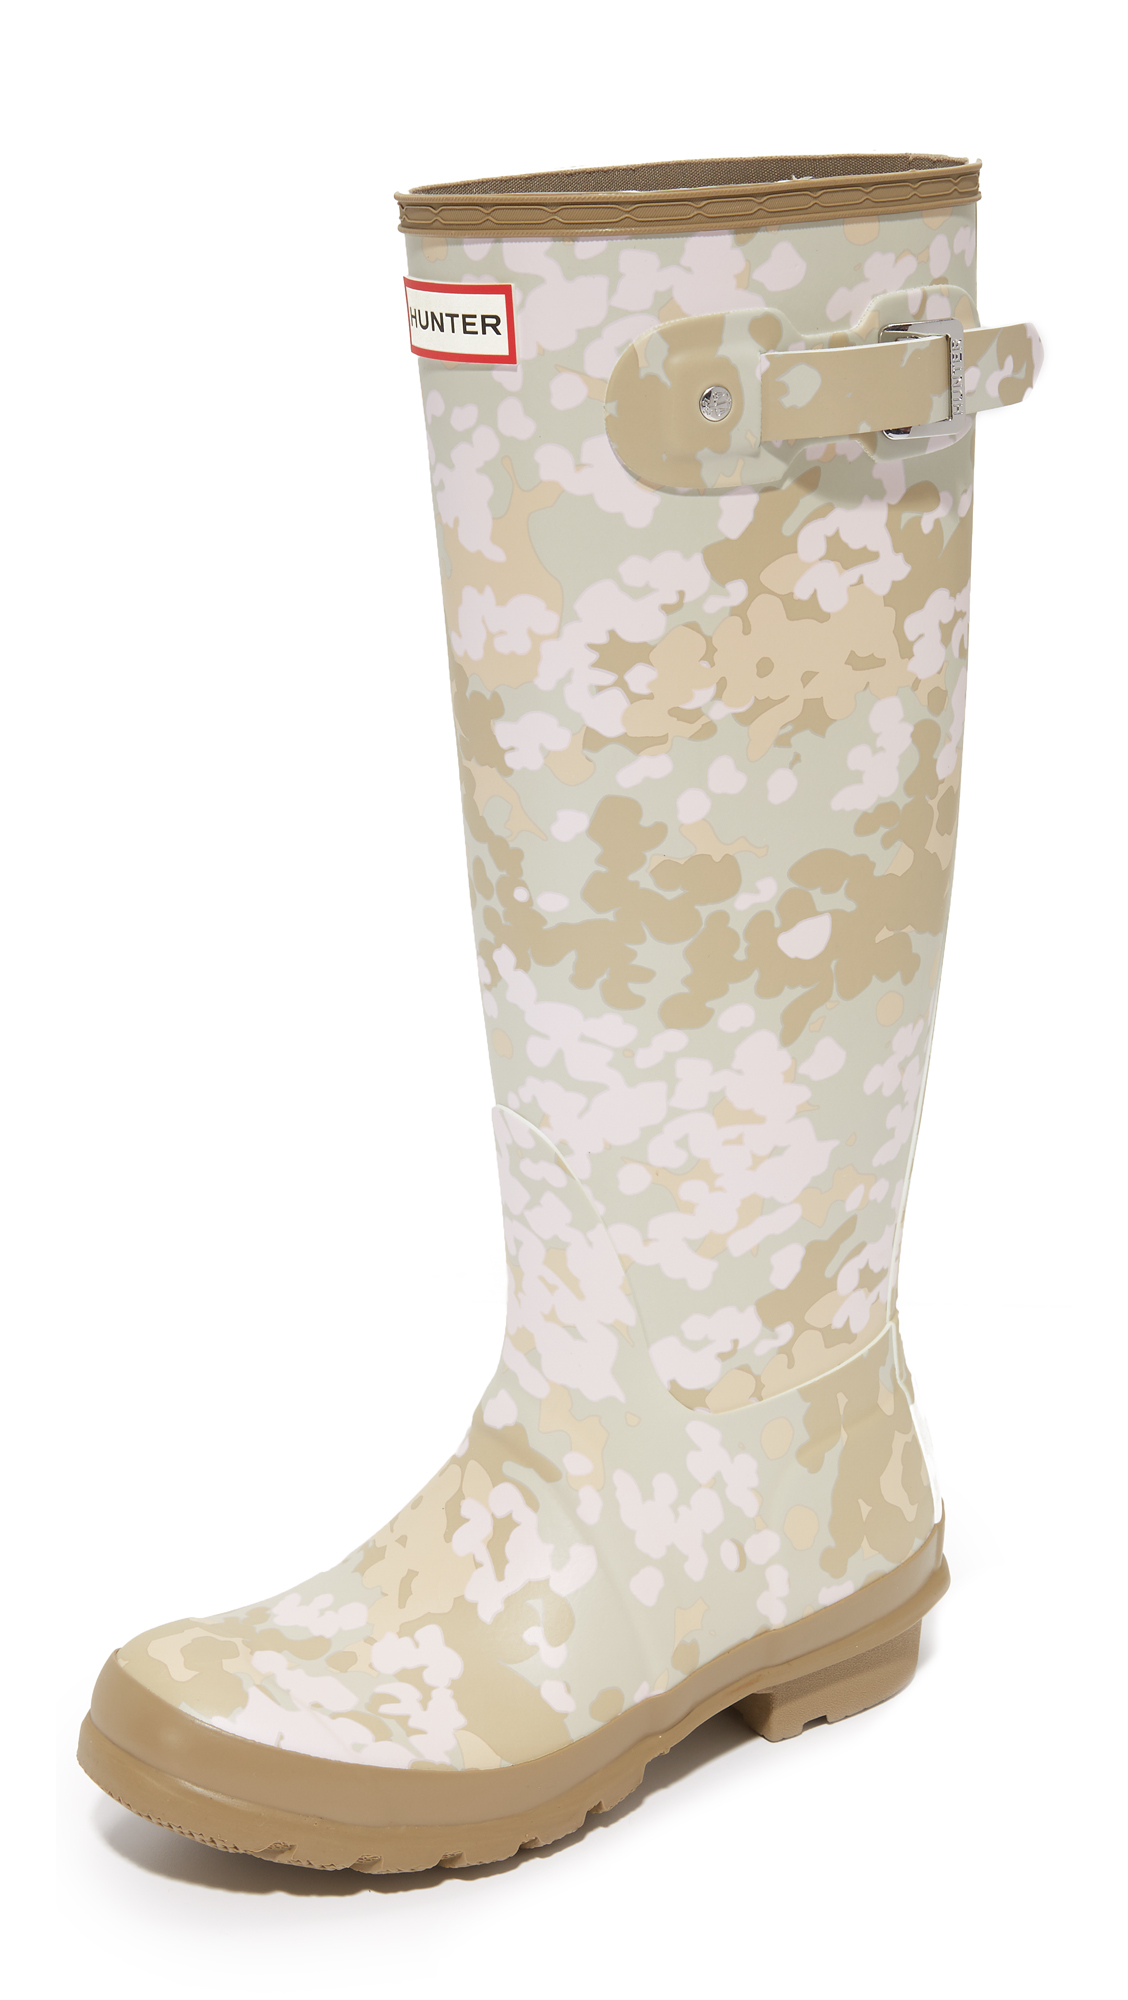 Hunter Boots Original Tall Camo Boots - Pale Sand at Shopbop